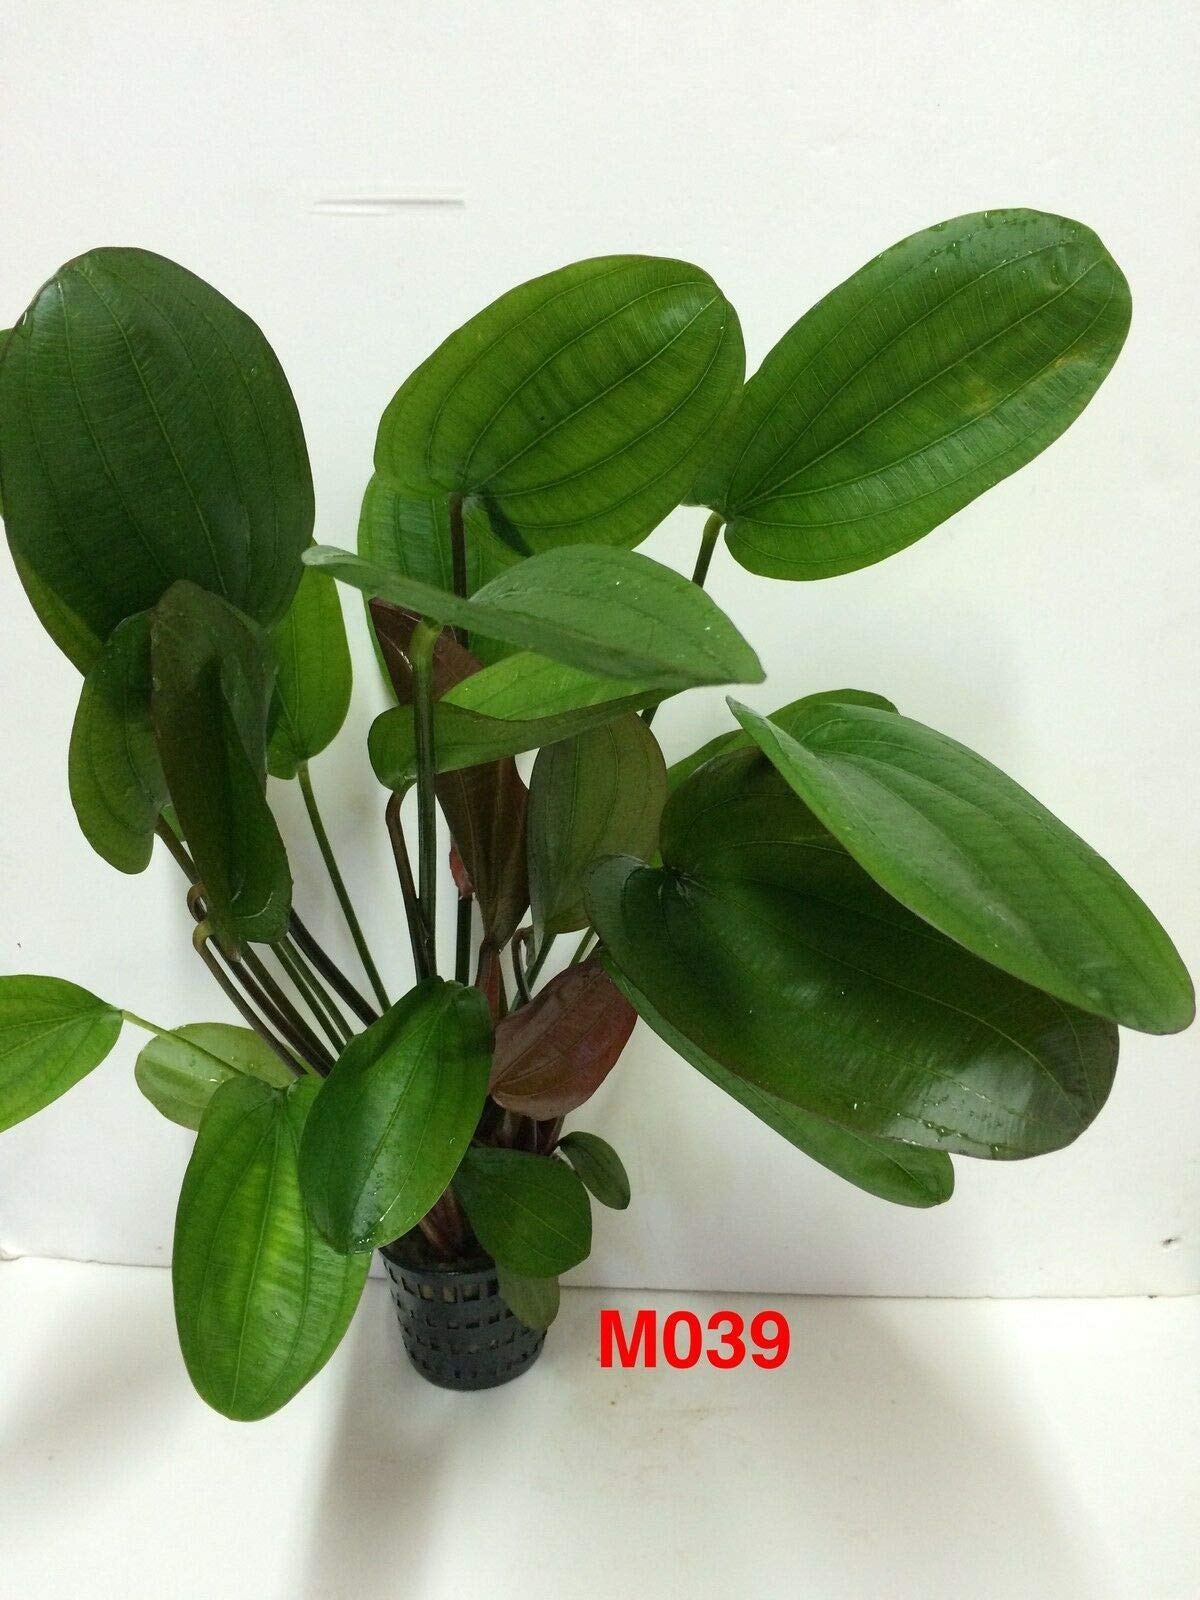 Echinodorus 'Big Bear' Mother Pot Live Aquatic Fresh Water Plant M039 jKE -133